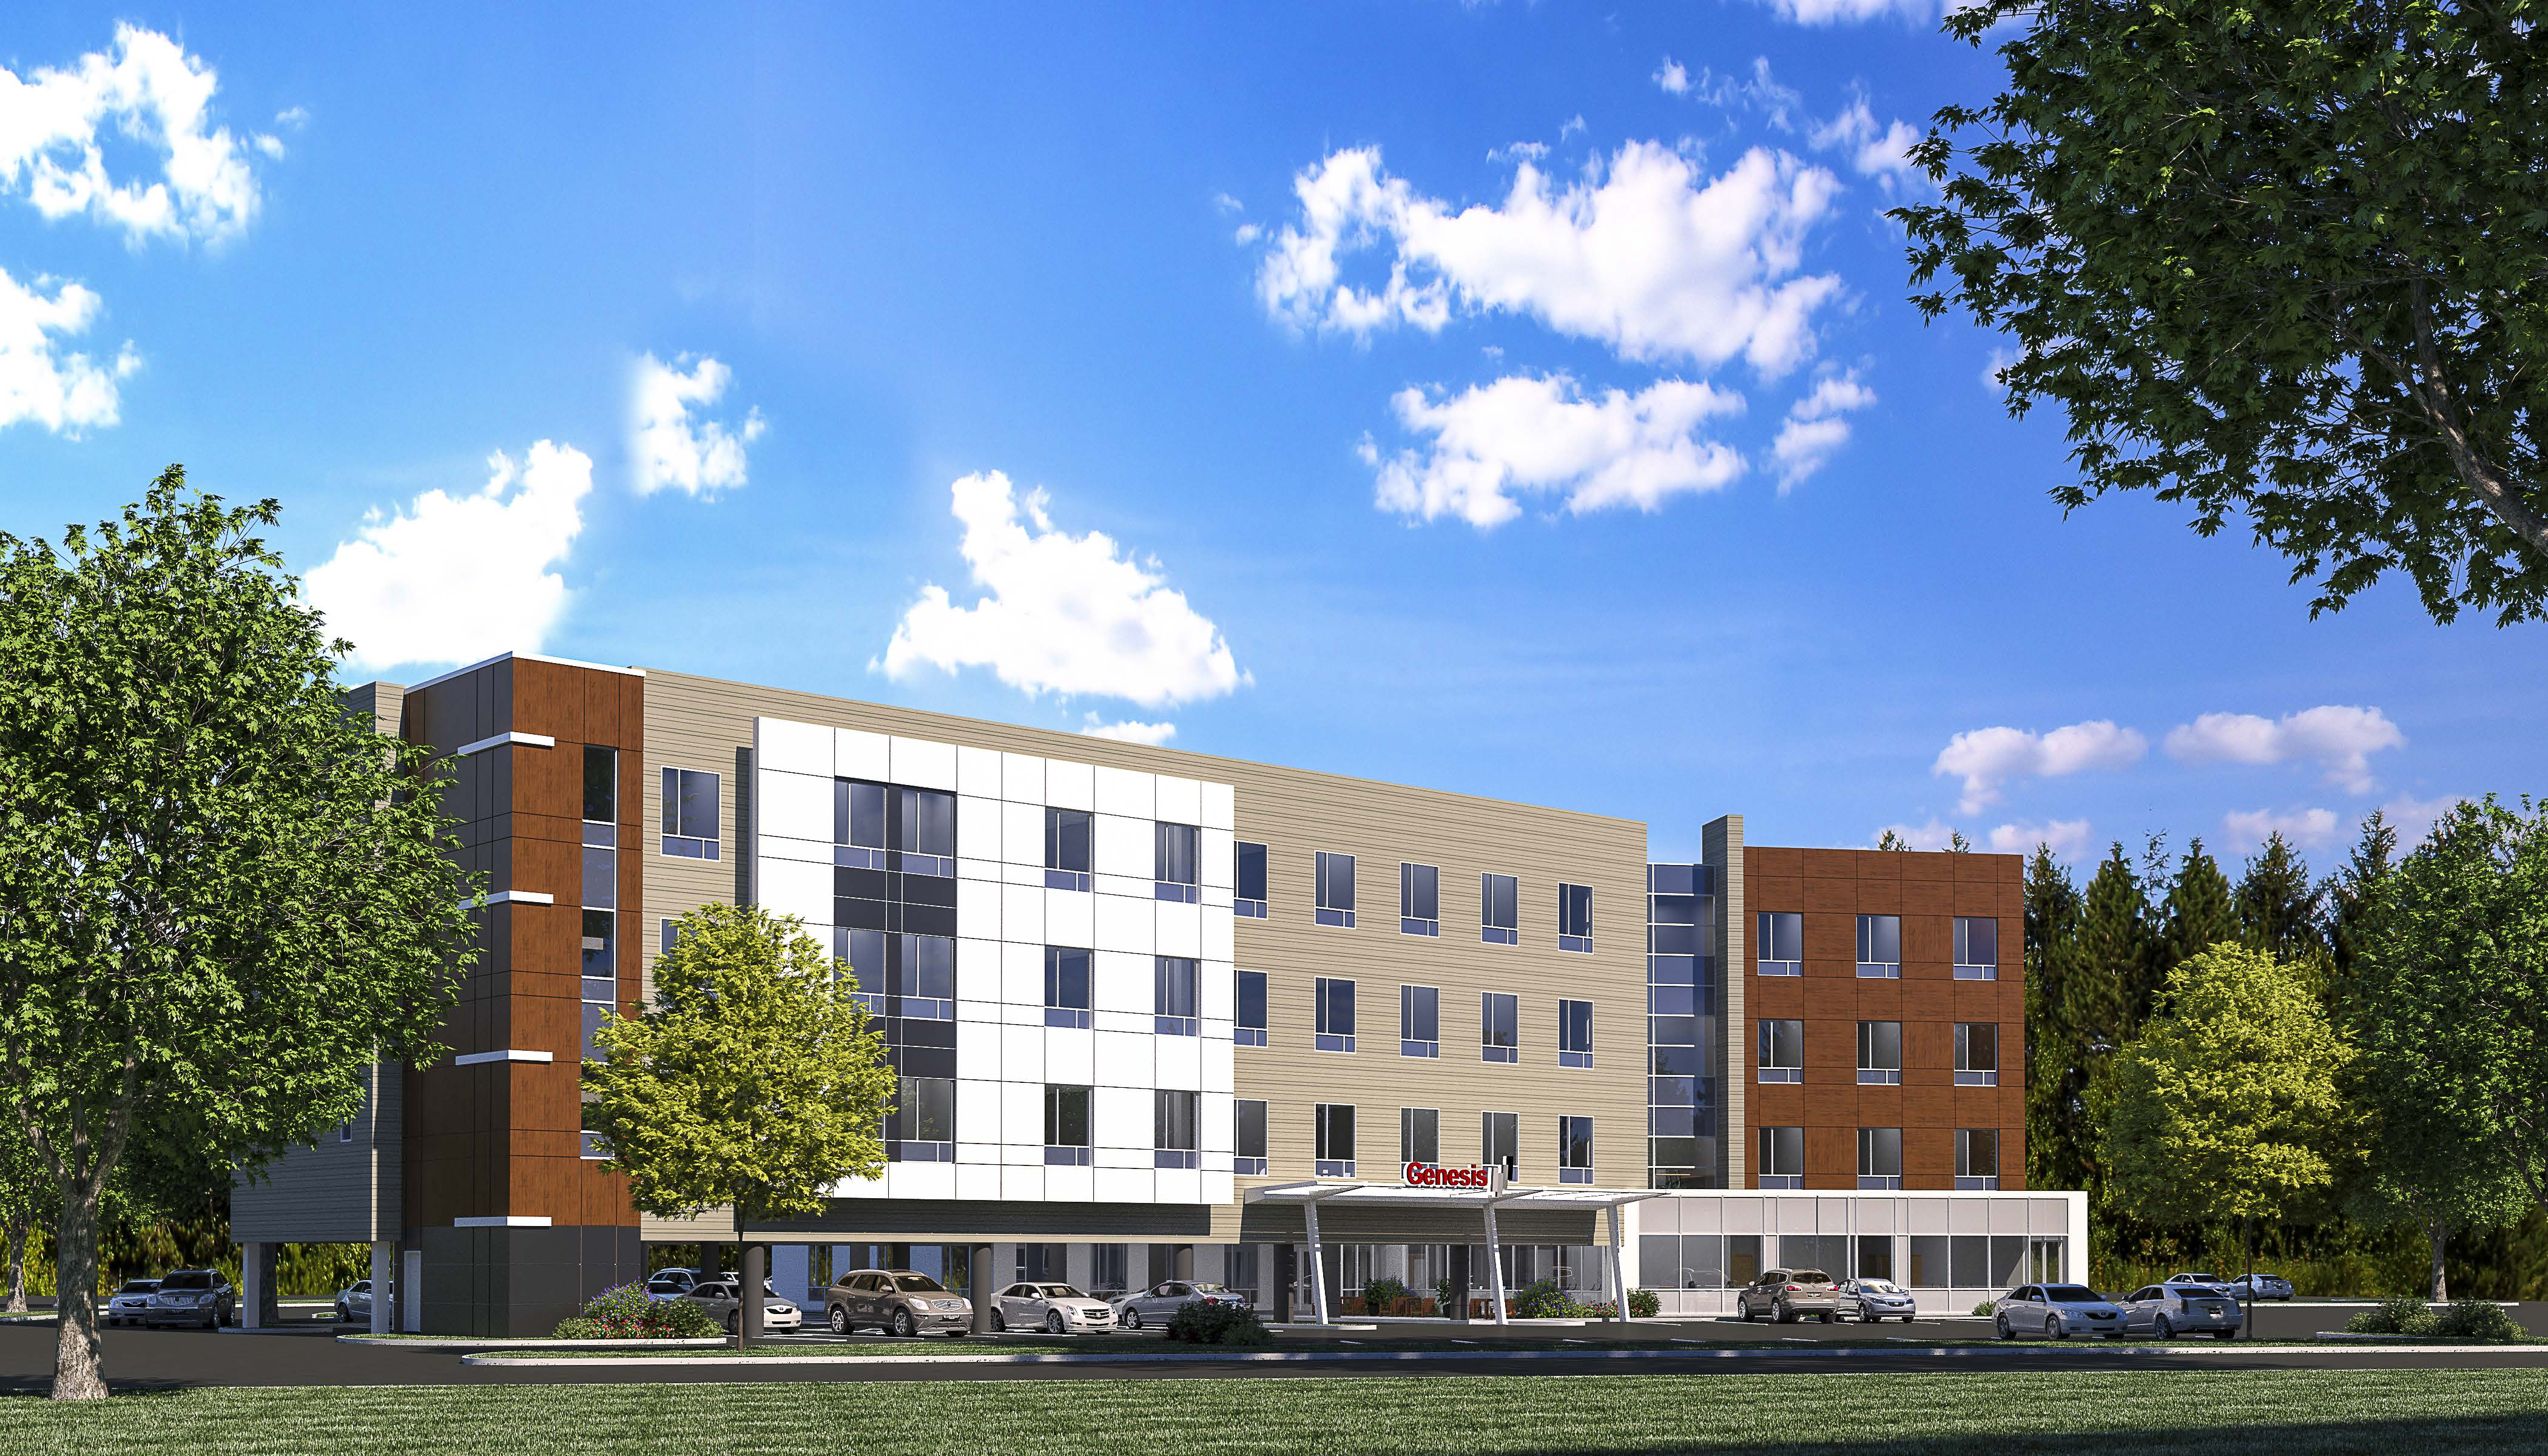 Maugel Architects Announced Today Genesis HealthCare Selected The Firm And  General Contractor RP Masiello Of Boylston To Design And Build A New  83,000sf, ...